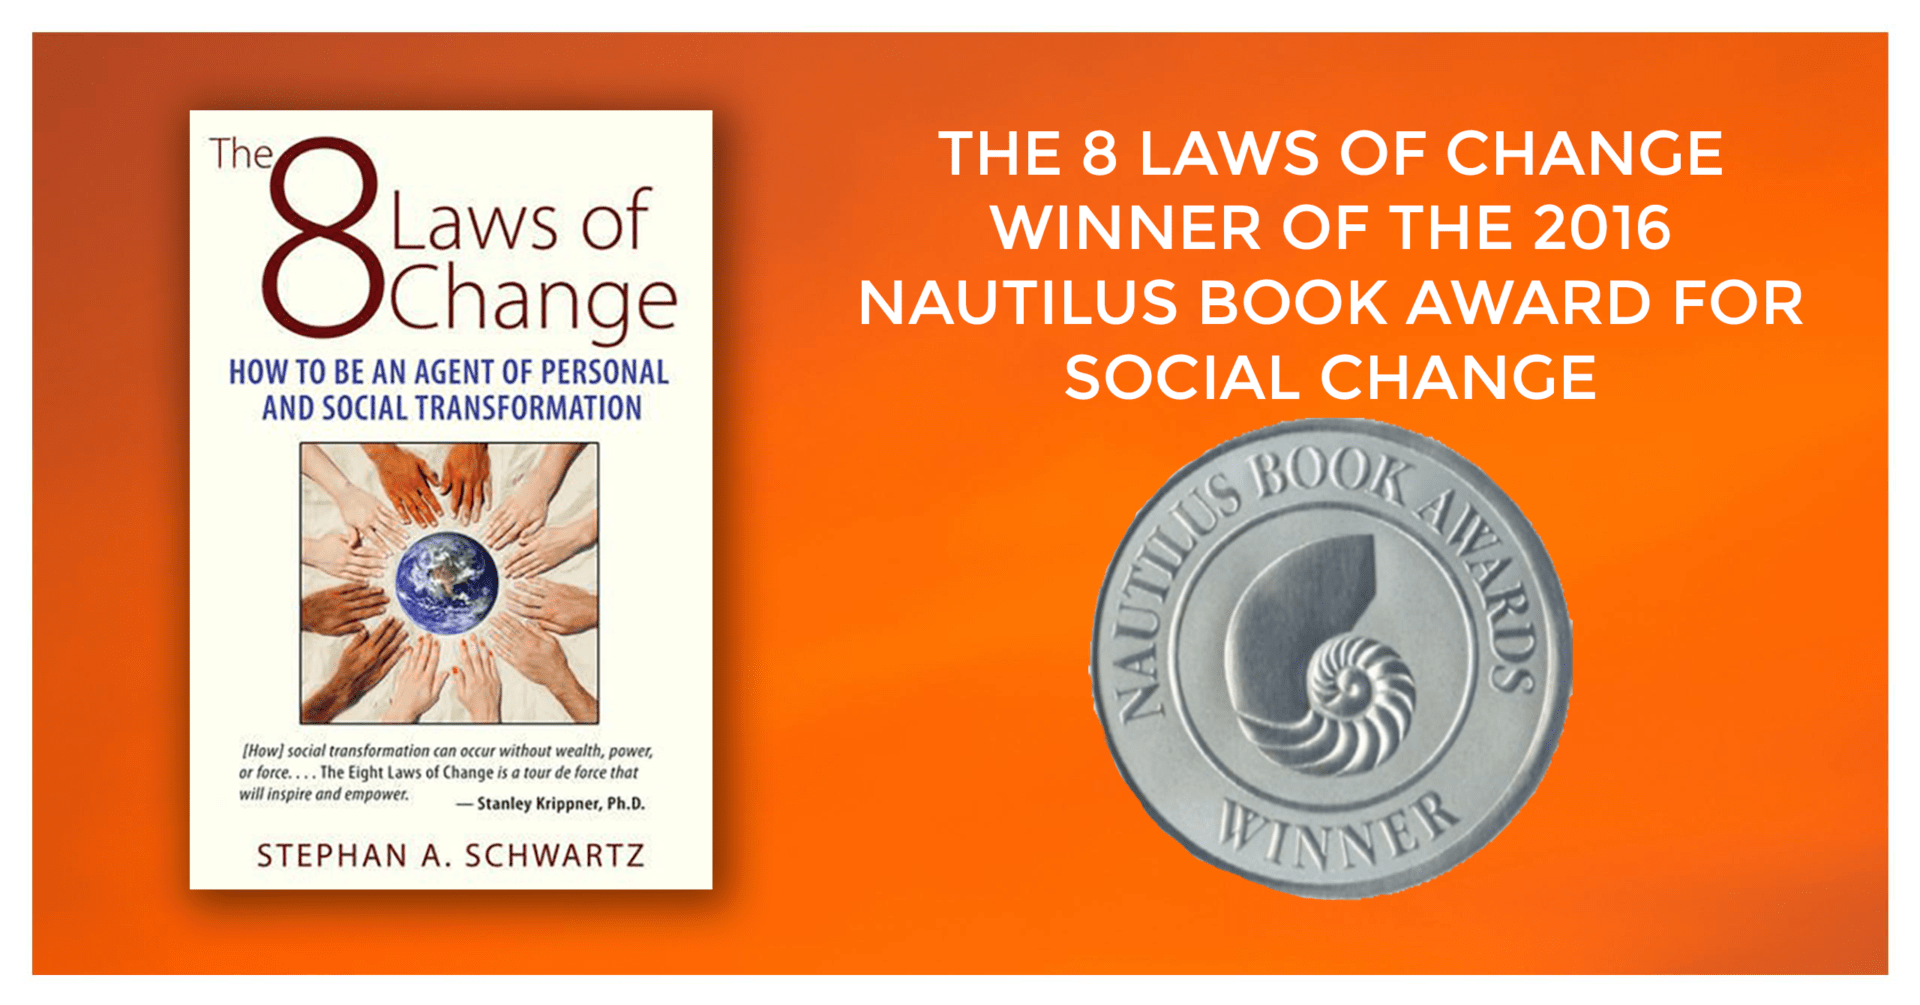 8 Laws of Change - Nautilus Award Winner for Social Change